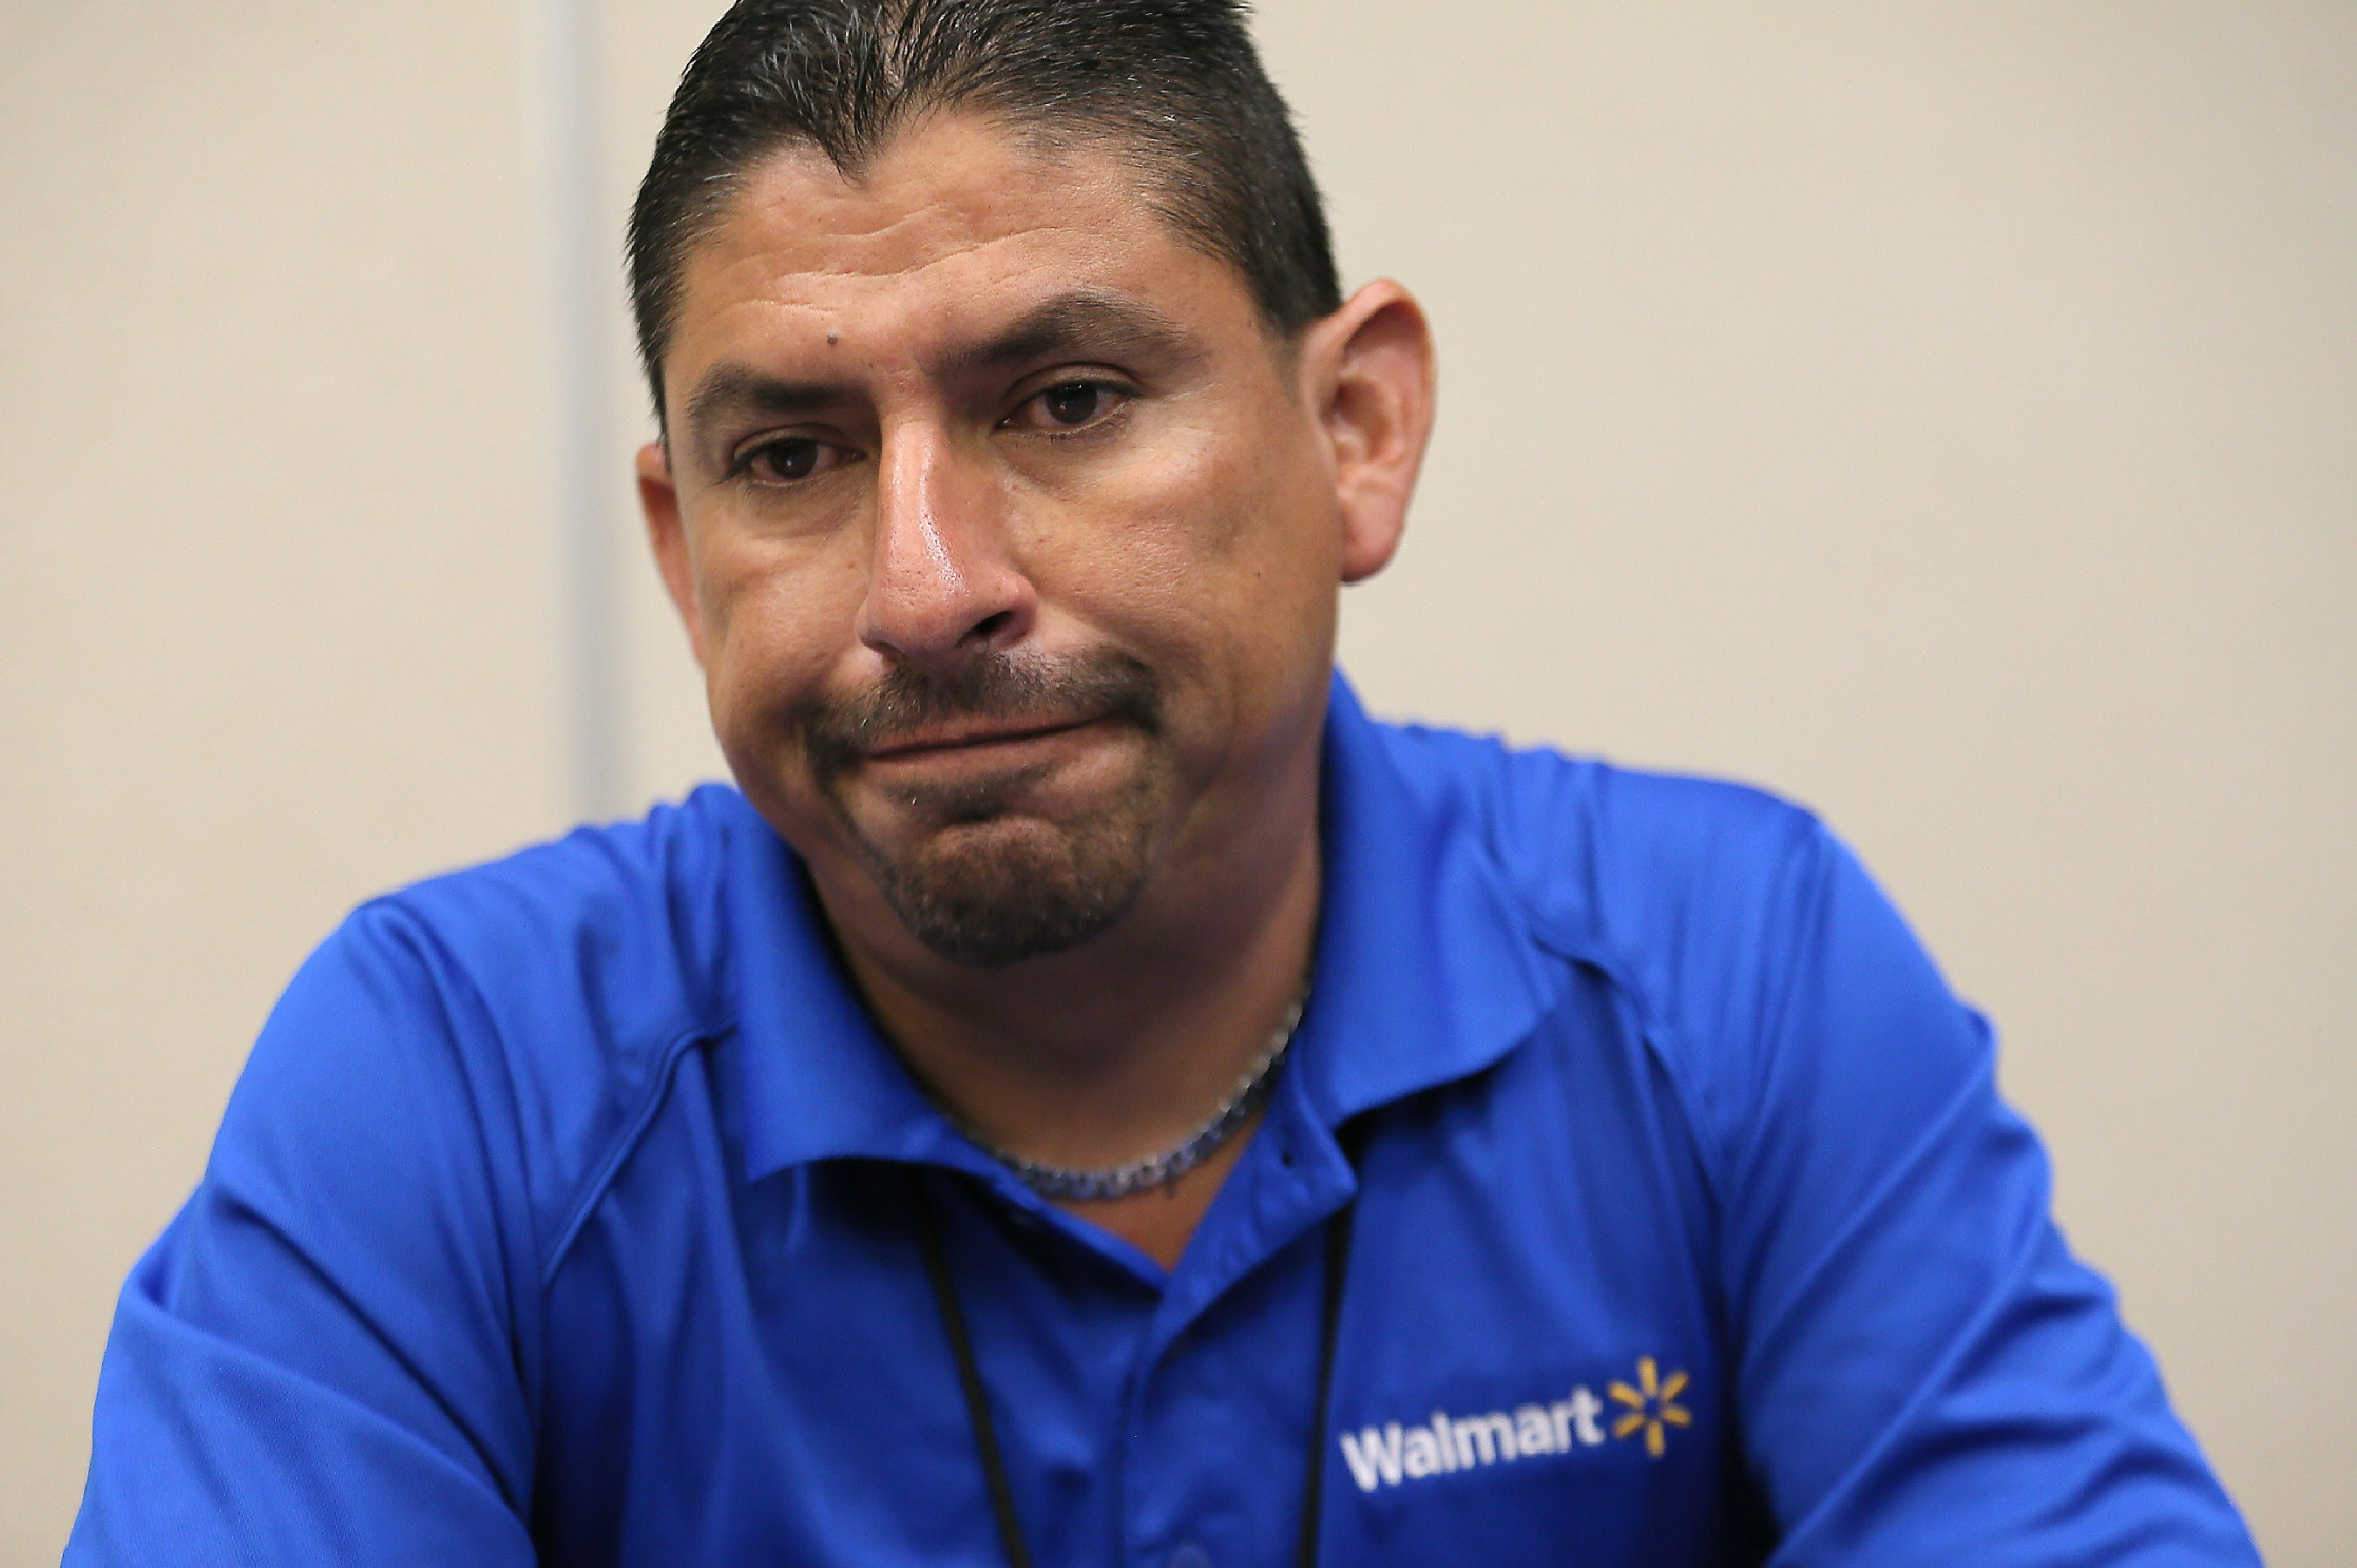 Walmart store manager Robert Evans on Thursday, Aug. 8, 2019, describes the scene at his store after a gunman opened fire Saturday, killing 22 and wounding 25 others. Evans rushed customers out a side door and told them to run.